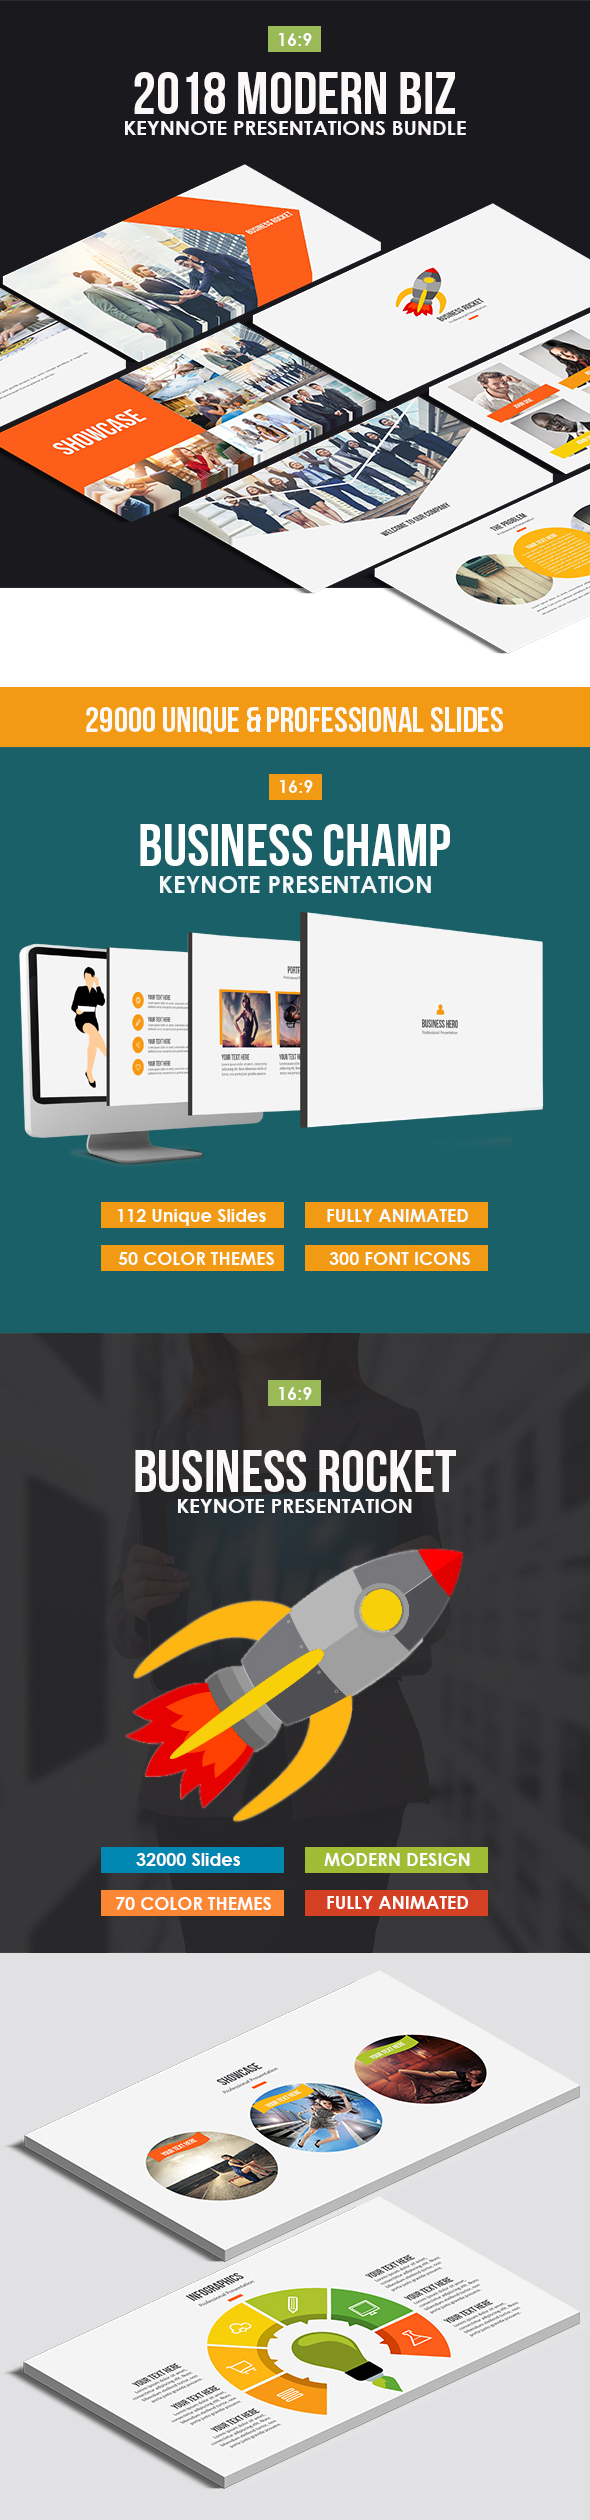 2018 Modern Biz Keynote Bundle - Business Keynote Templates